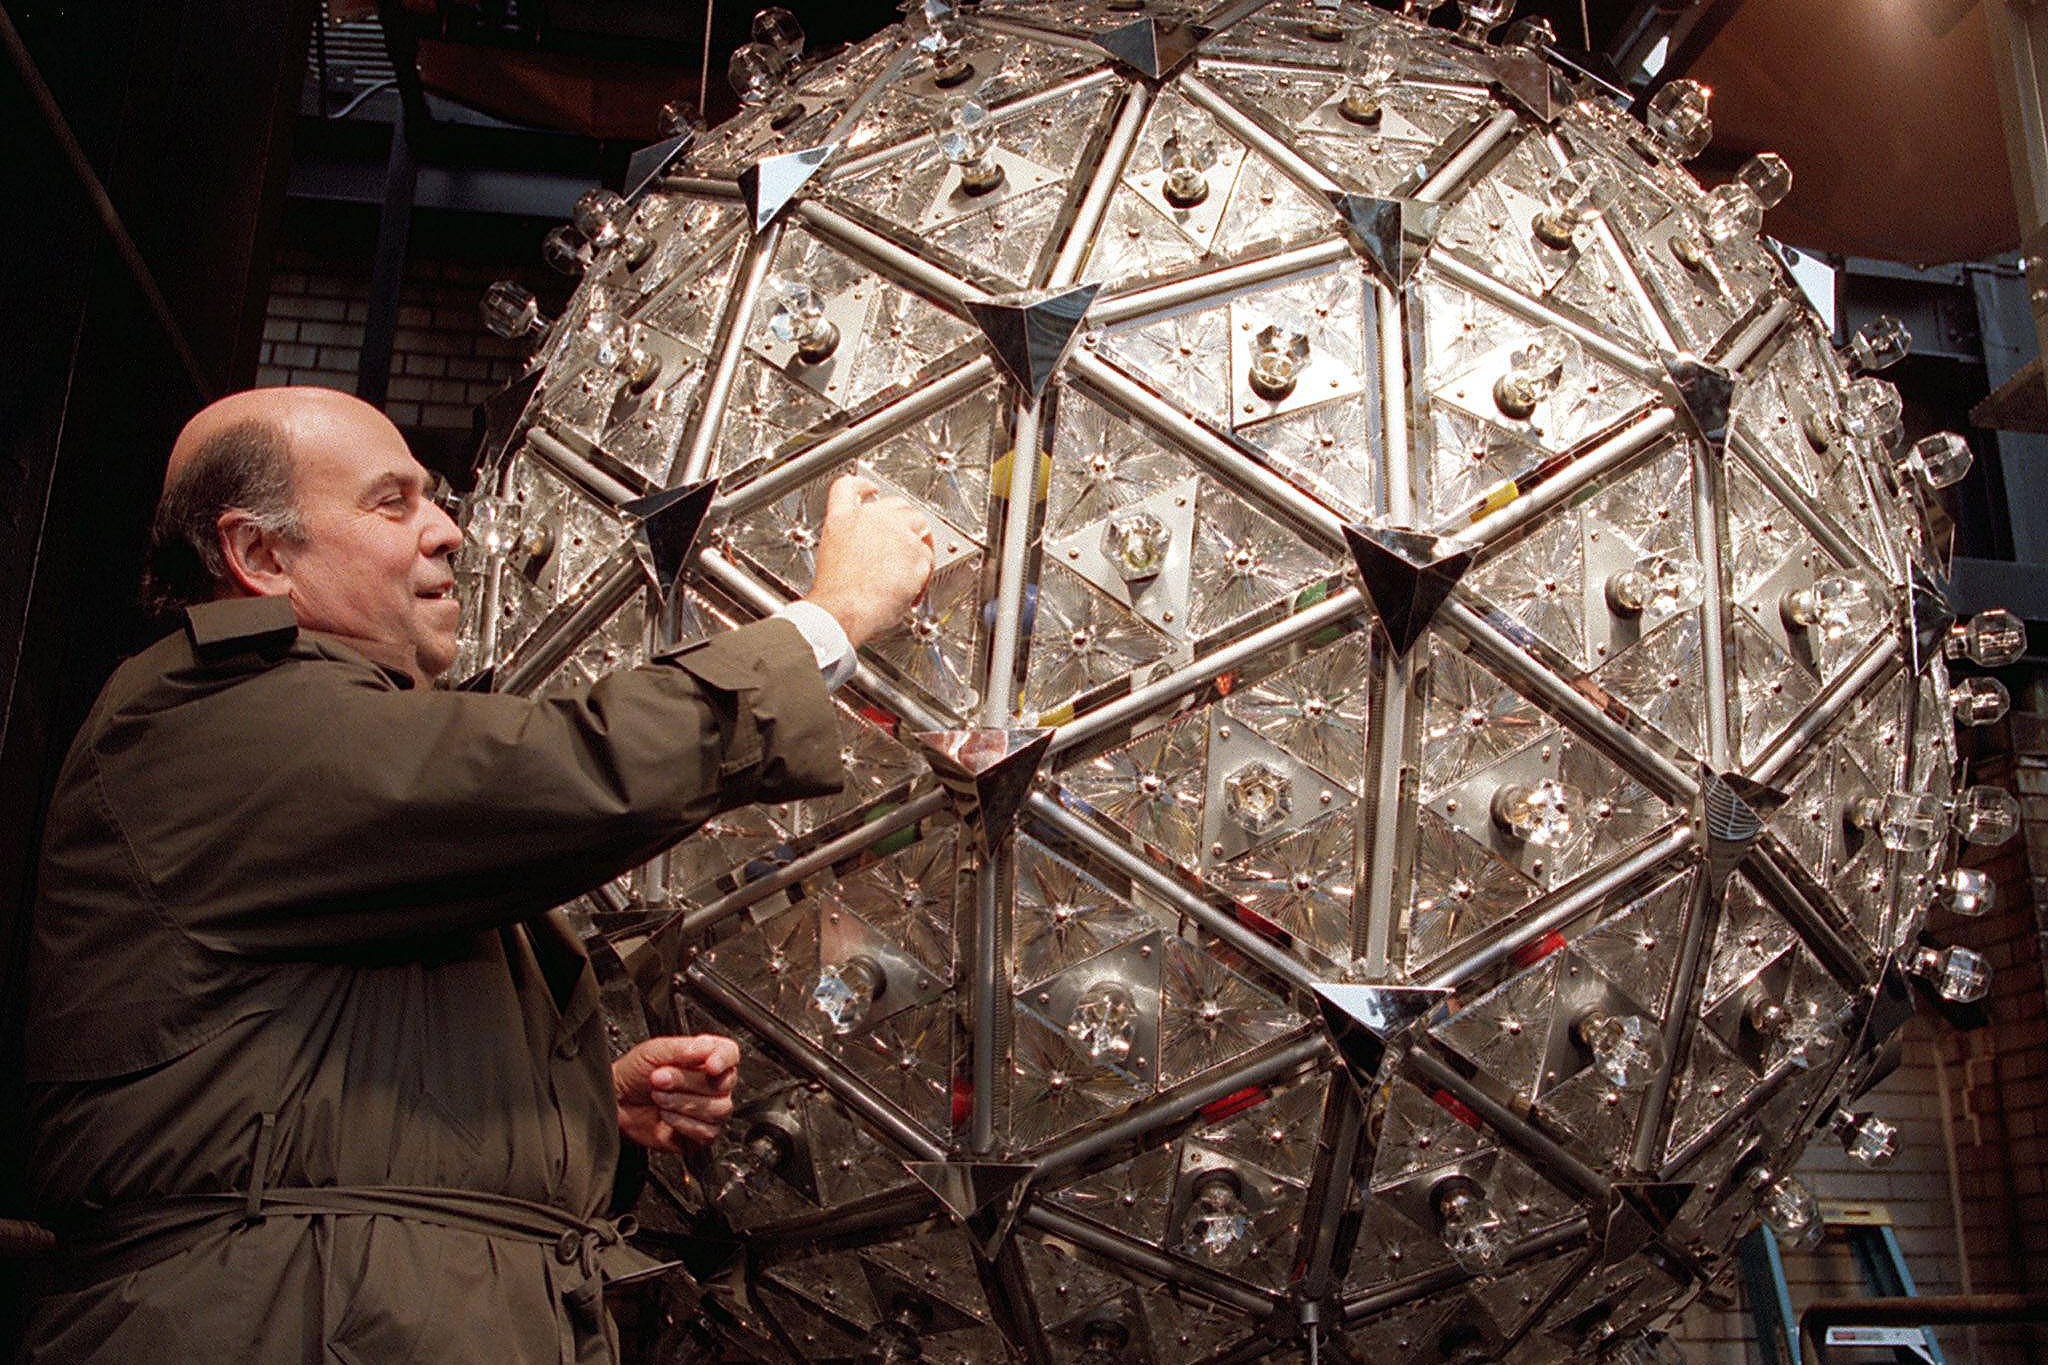 Steven Goldmacher of Philips Lighting Co. screws in a light bulb, Dec. 20, 1999. The 1,070-pound crystal ball, 6 feet in diameter, made its debut at the millennial celebration.